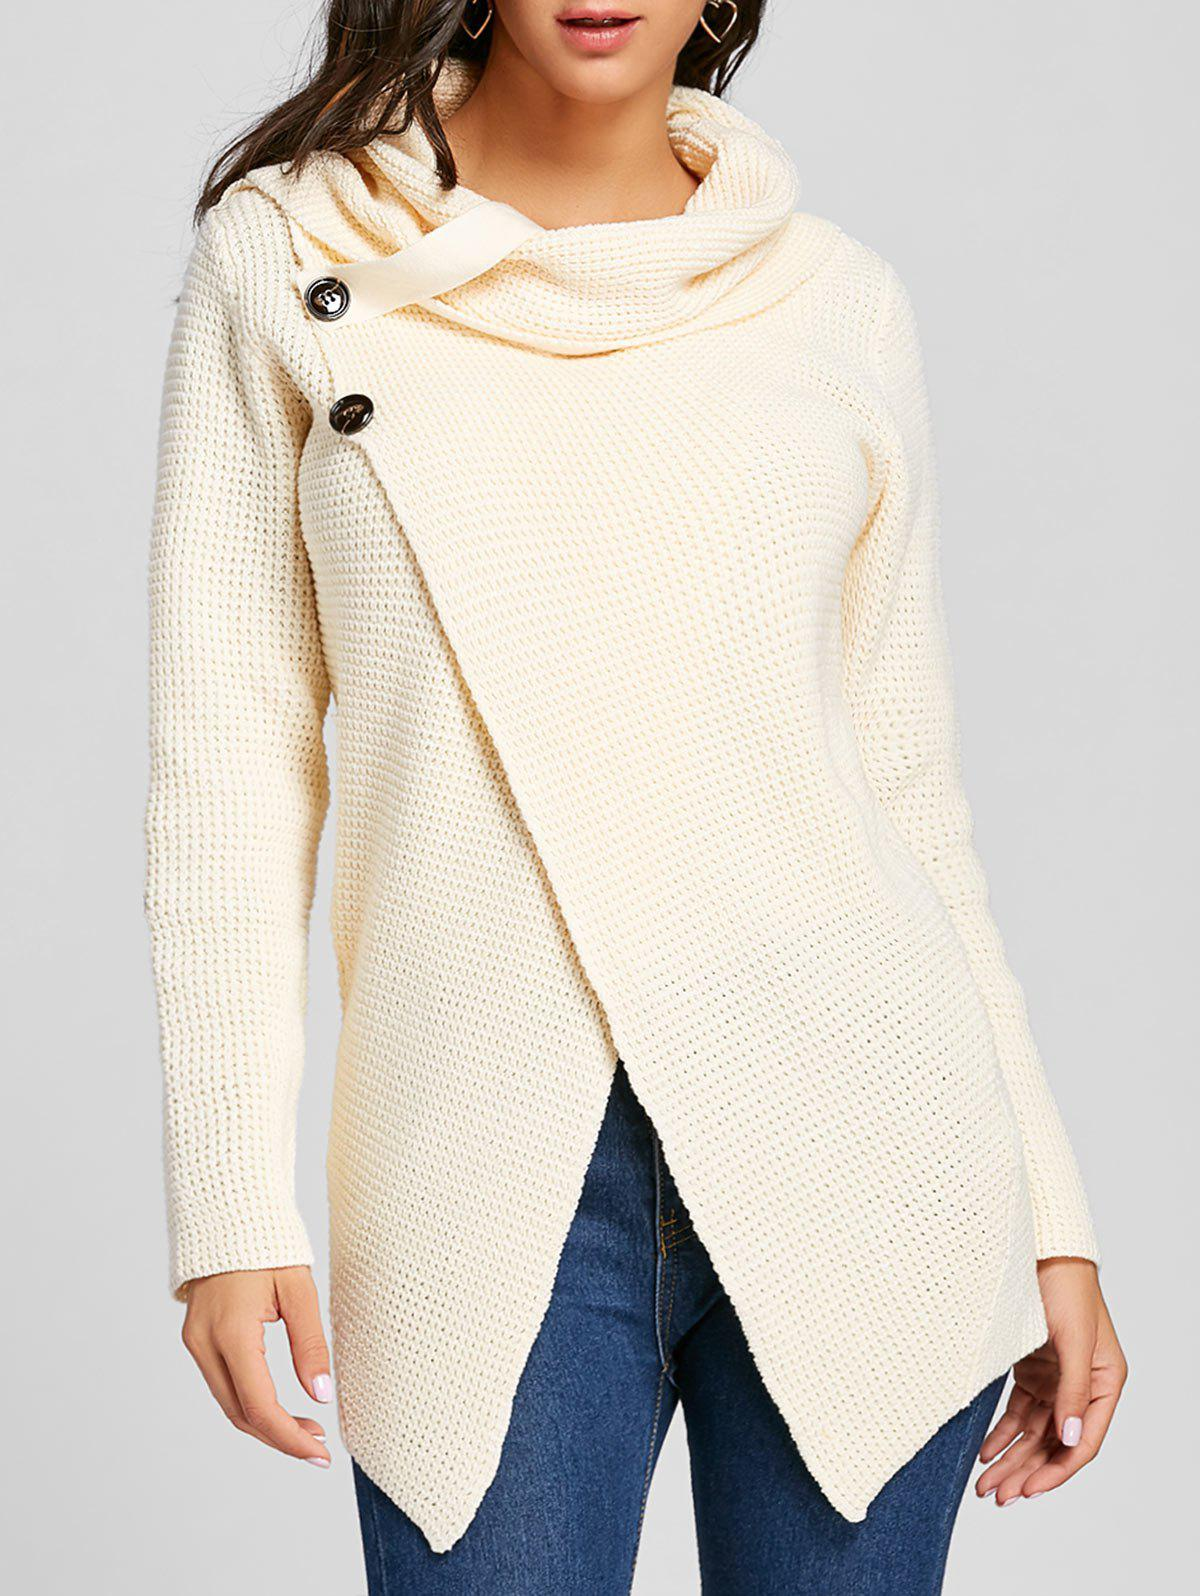 Cowl Neck Split Front Knitted Sweater - OFF WHITE 2XL